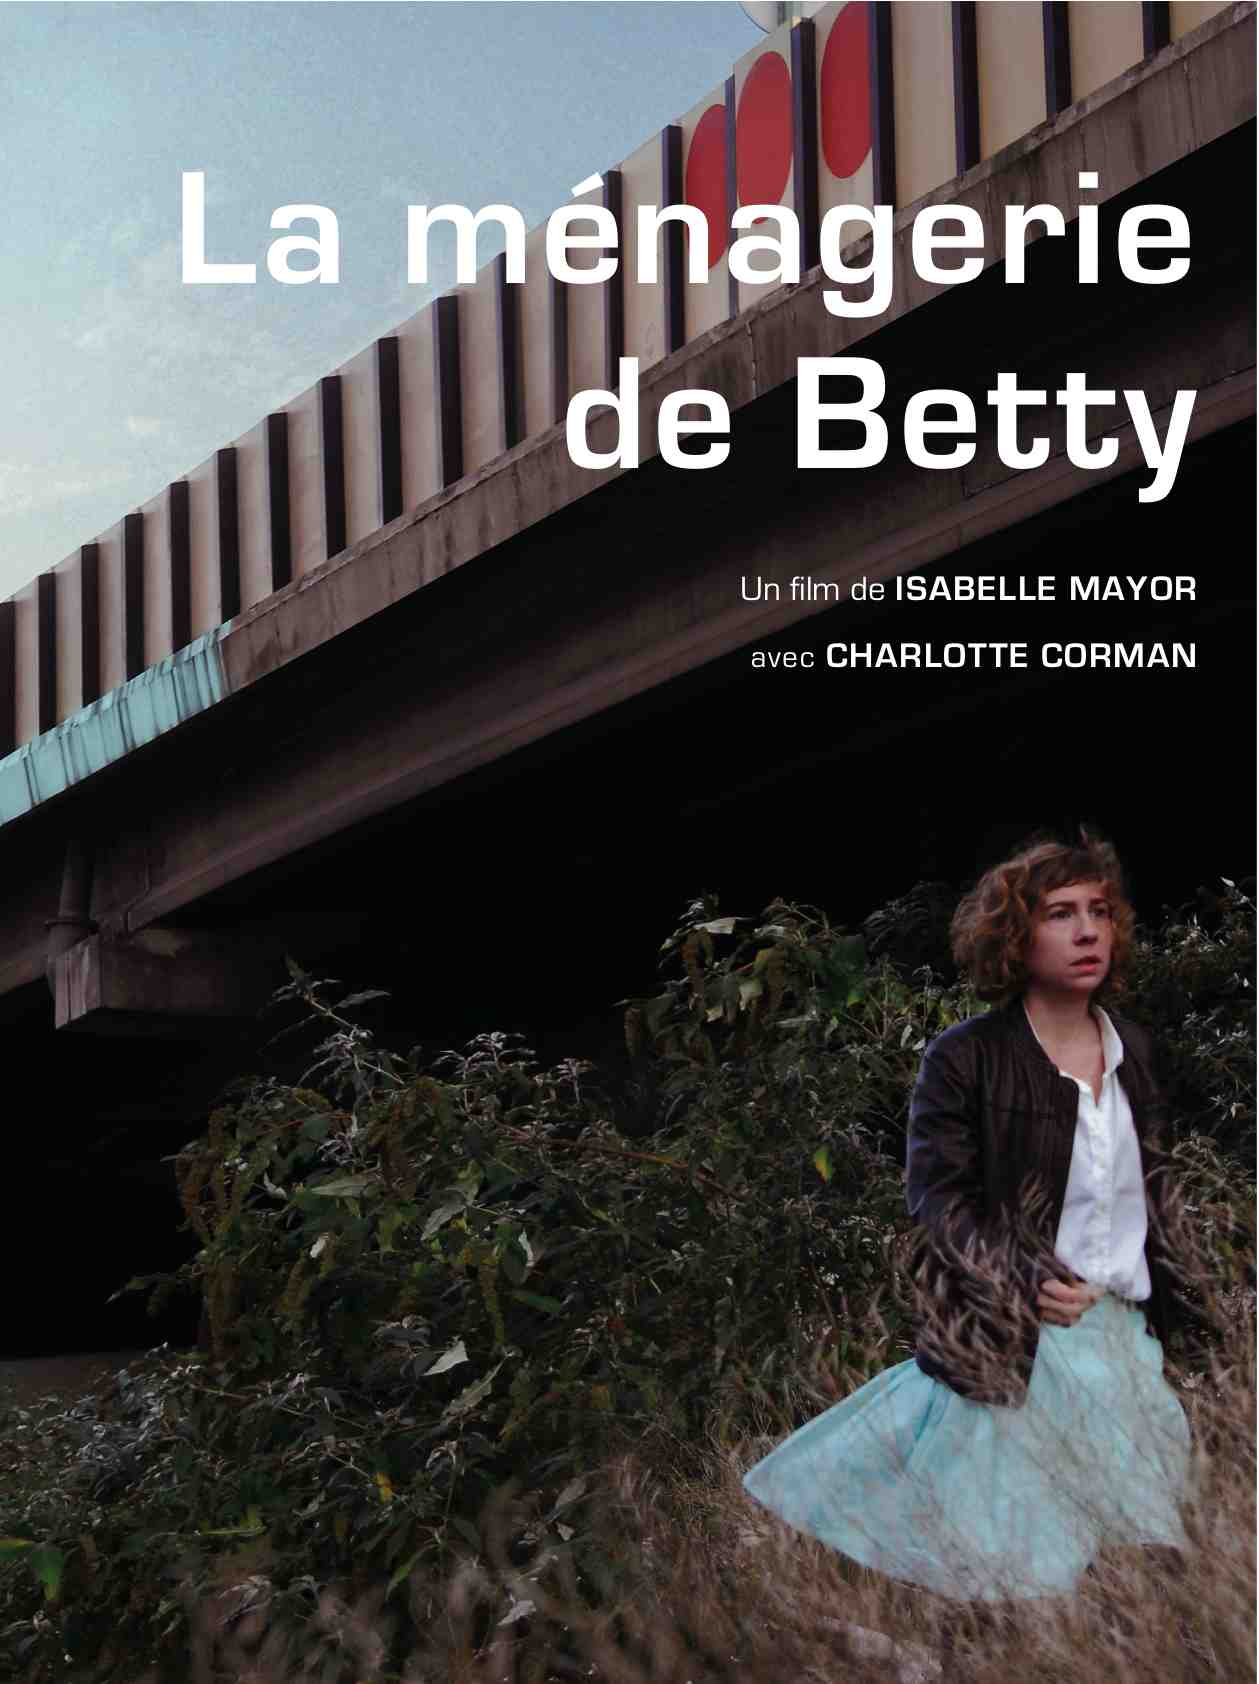 La ménagerie de Betty, d'Isabelle Mayor : Betty boom